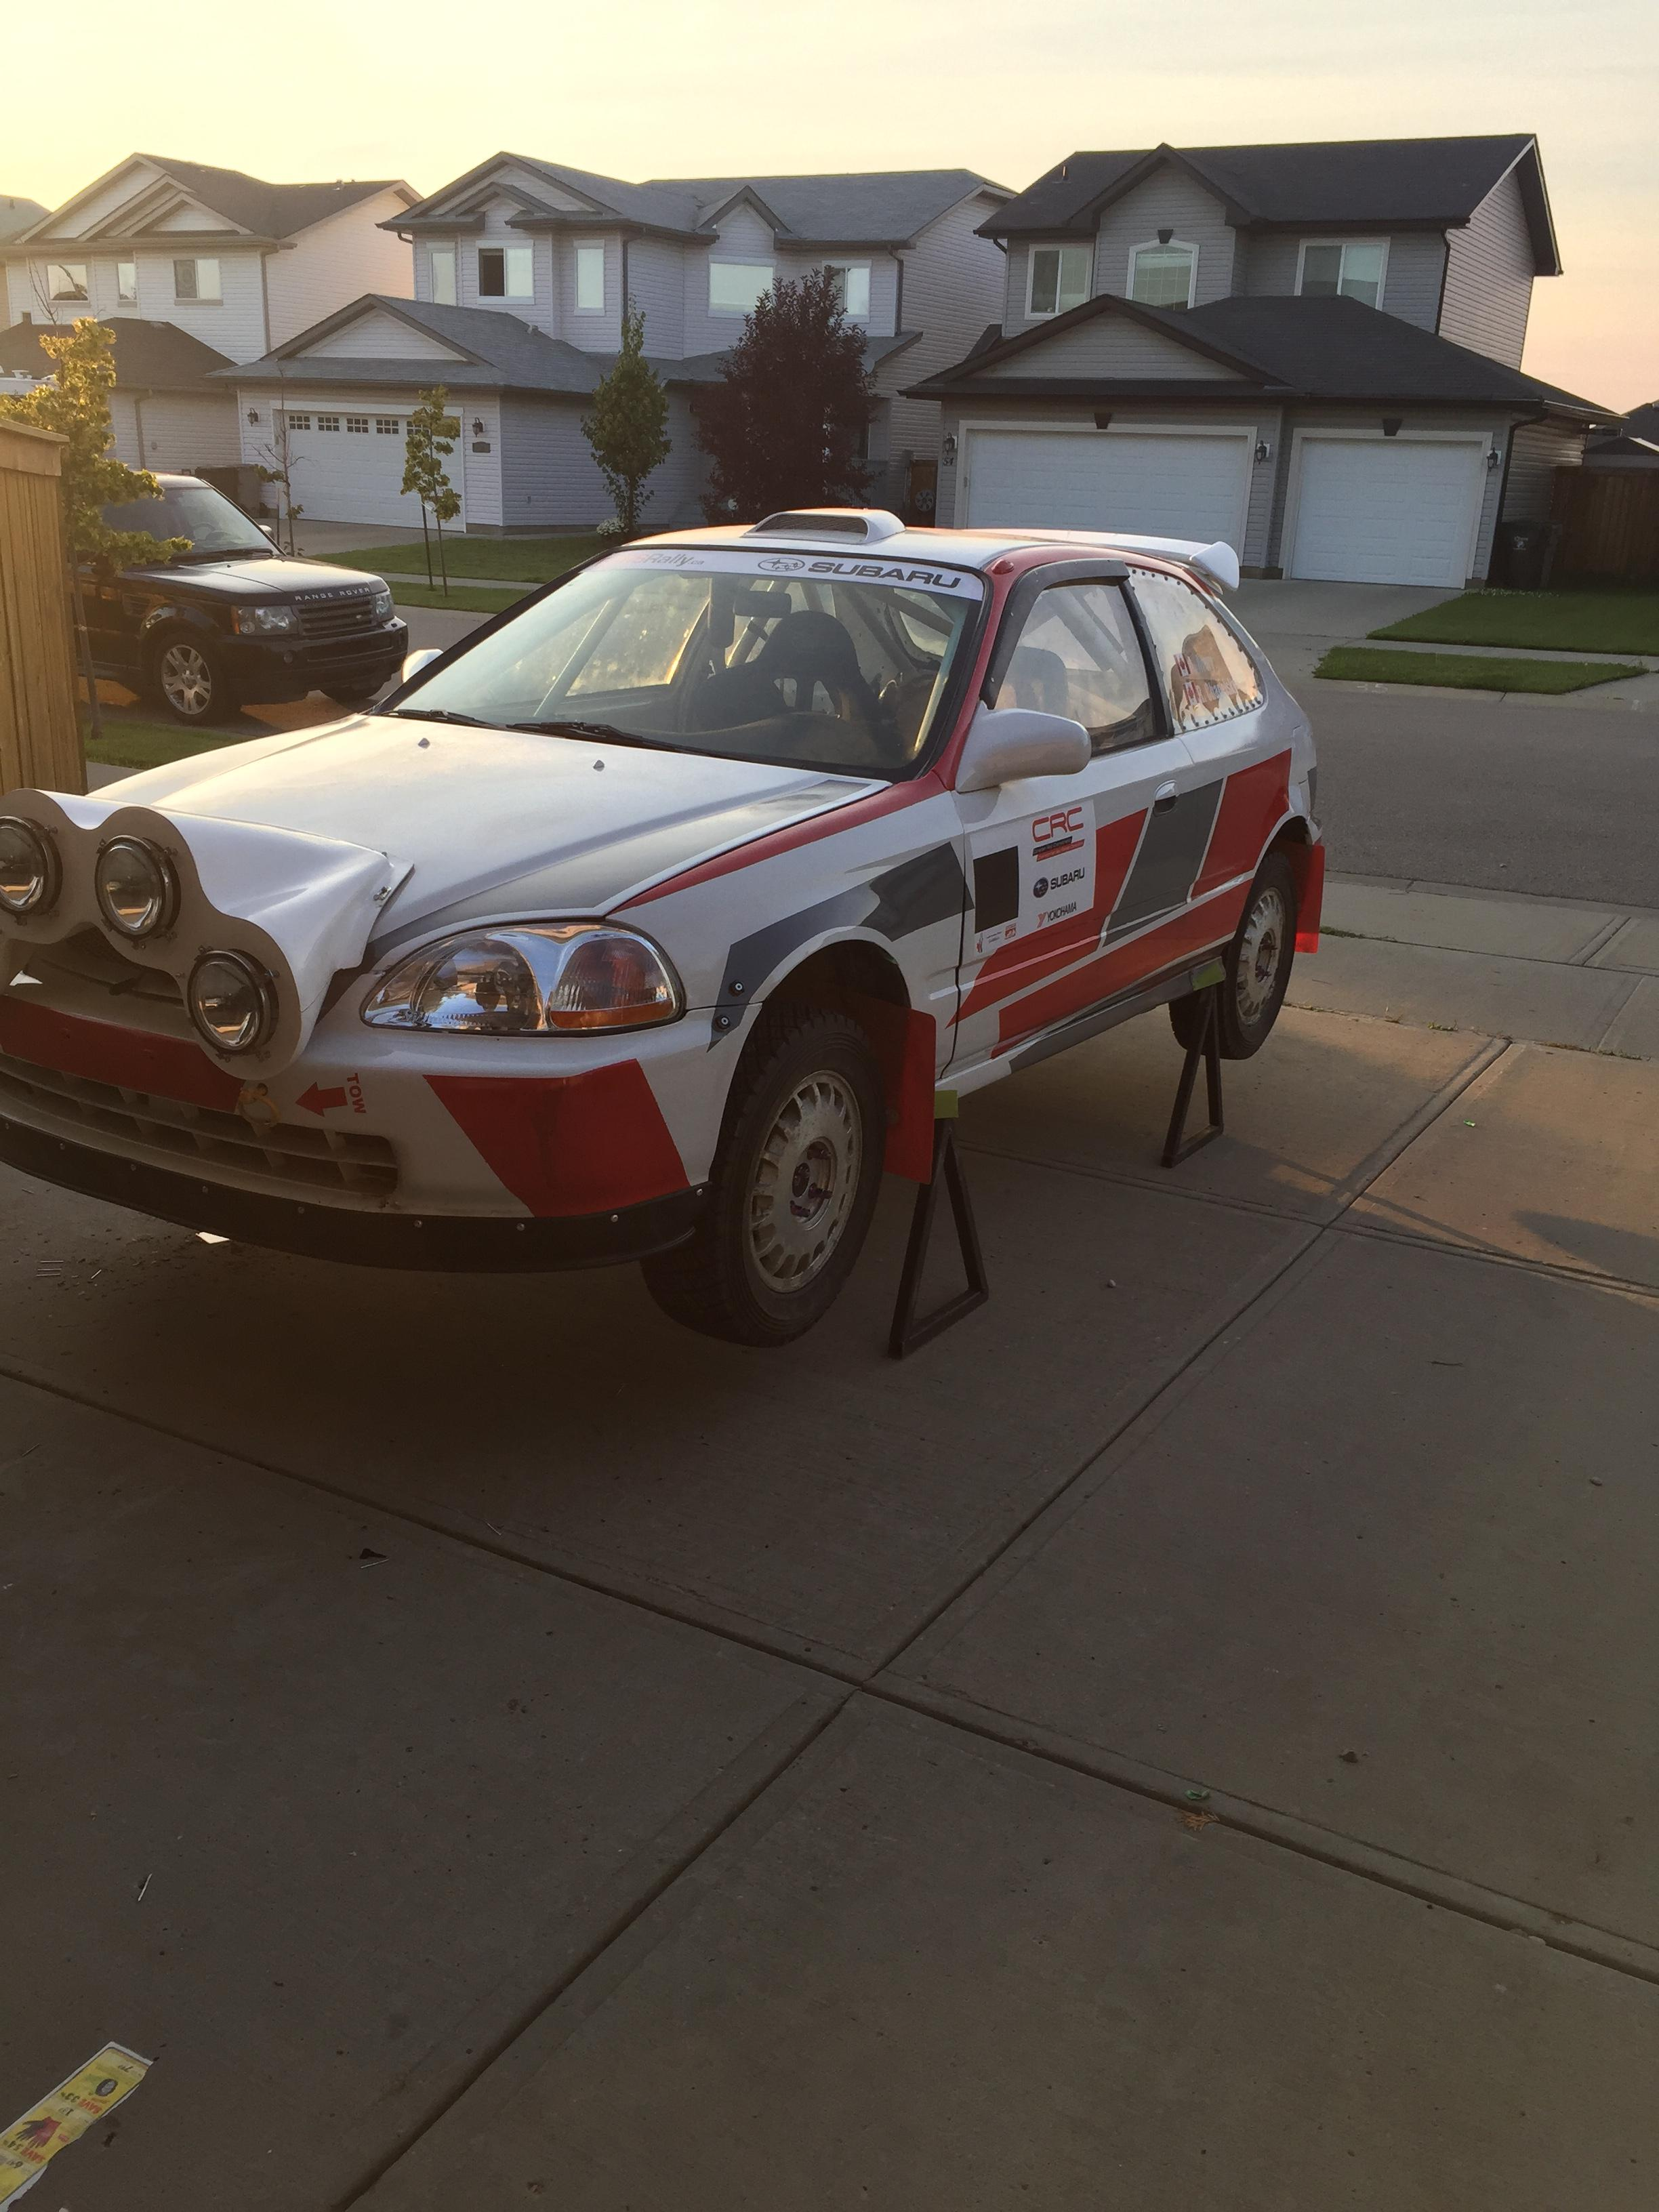 honda civic rally car for sale in edmonton 15000. Black Bedroom Furniture Sets. Home Design Ideas